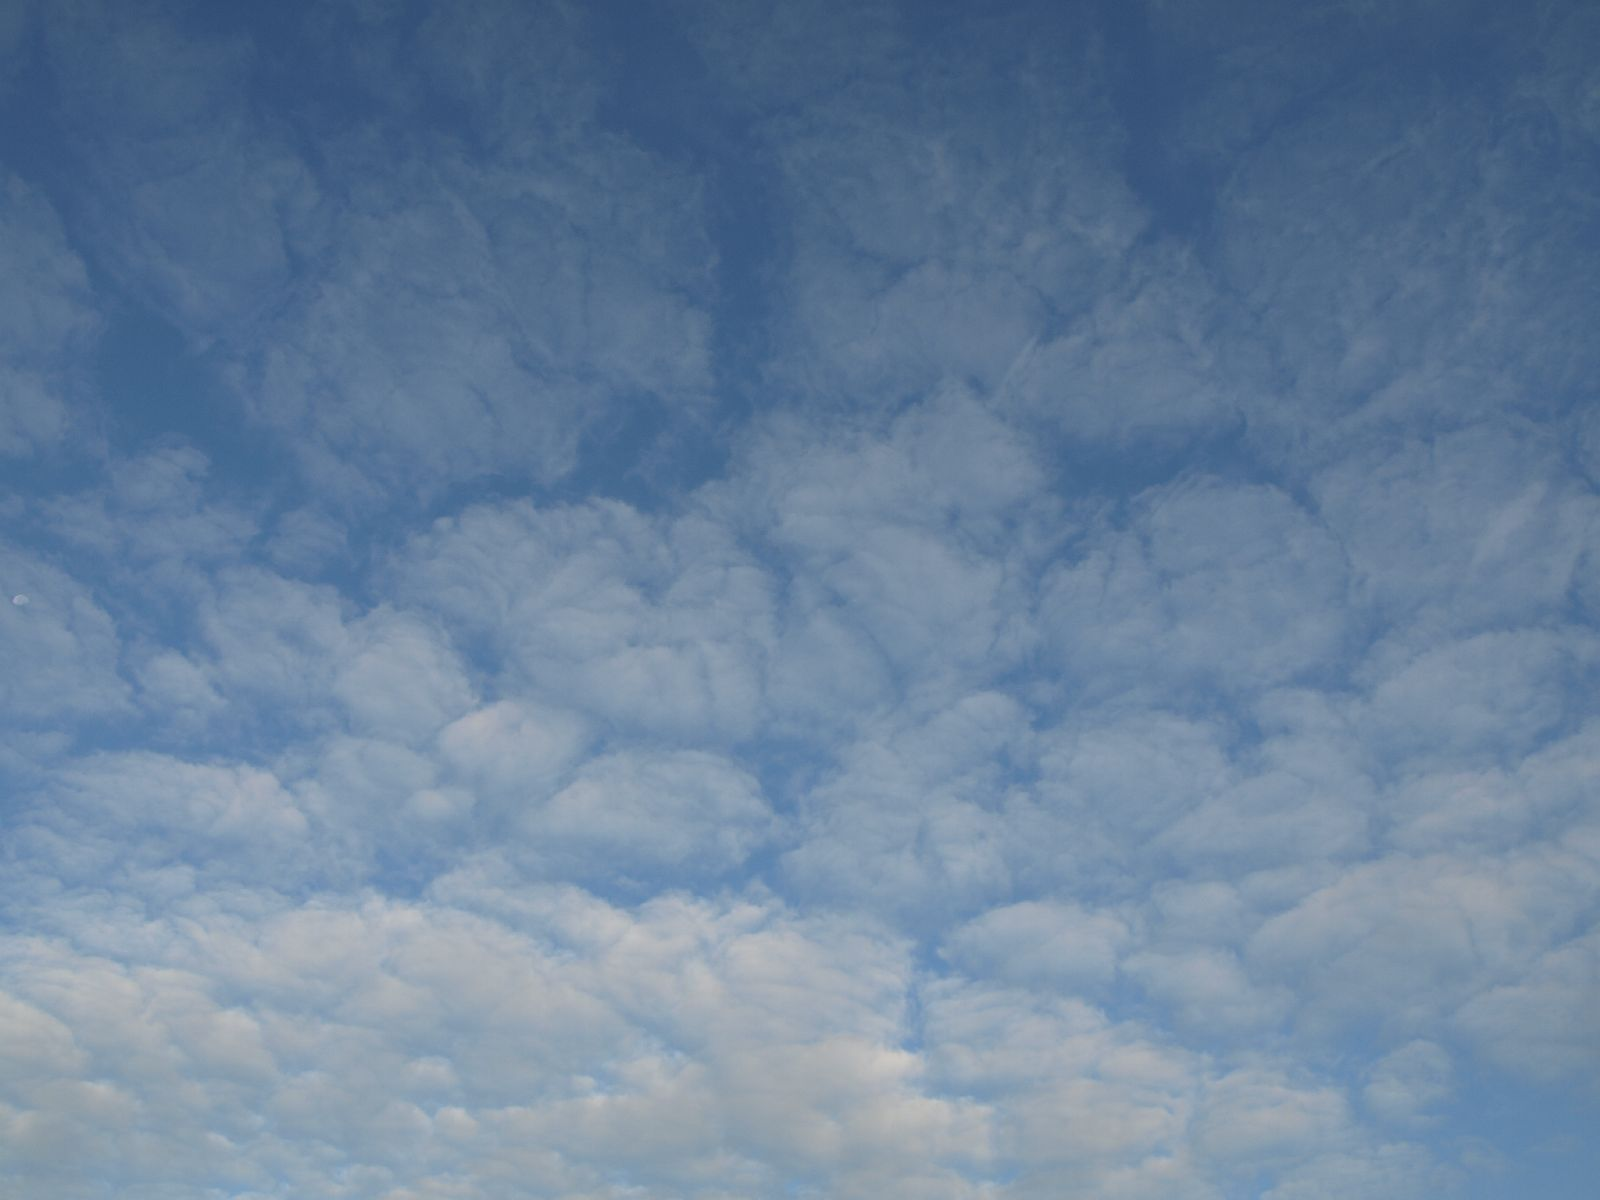 Sky_Clouds_Photo_Texture_A_P8214566